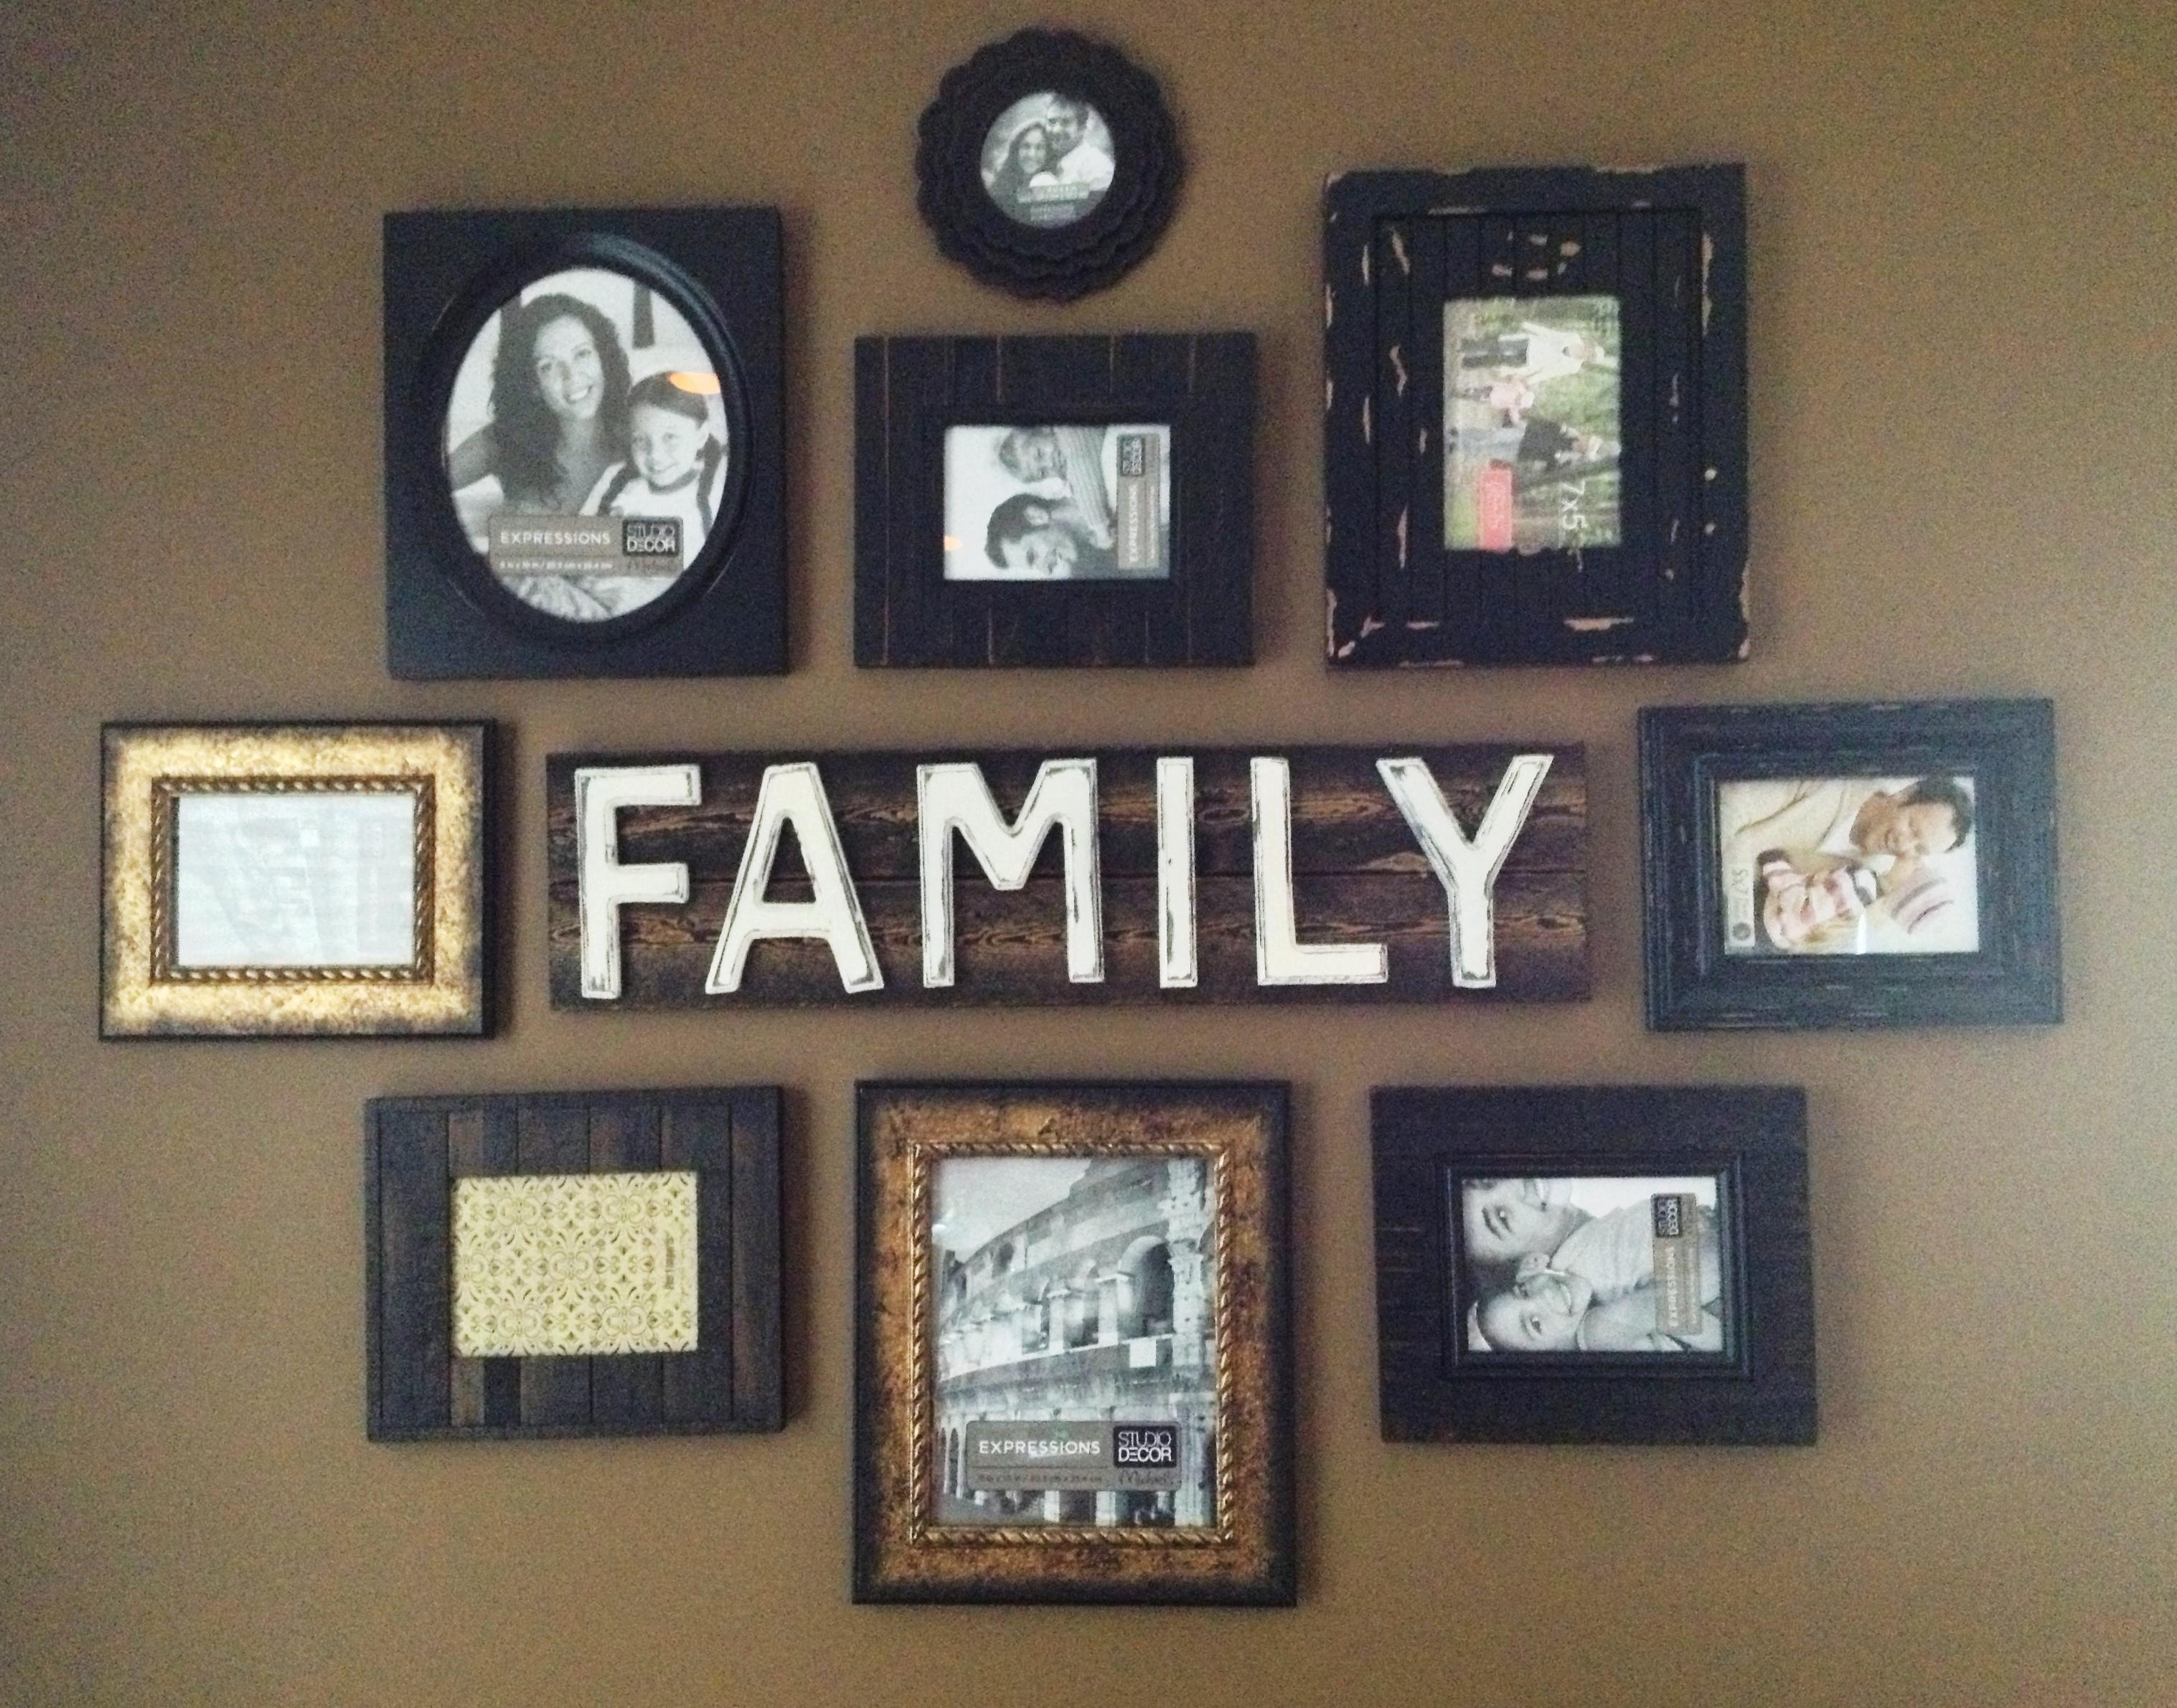 Family Wall Art Picture Frames | Wallartideas Within Family Photo Wall Art (View 3 of 20)